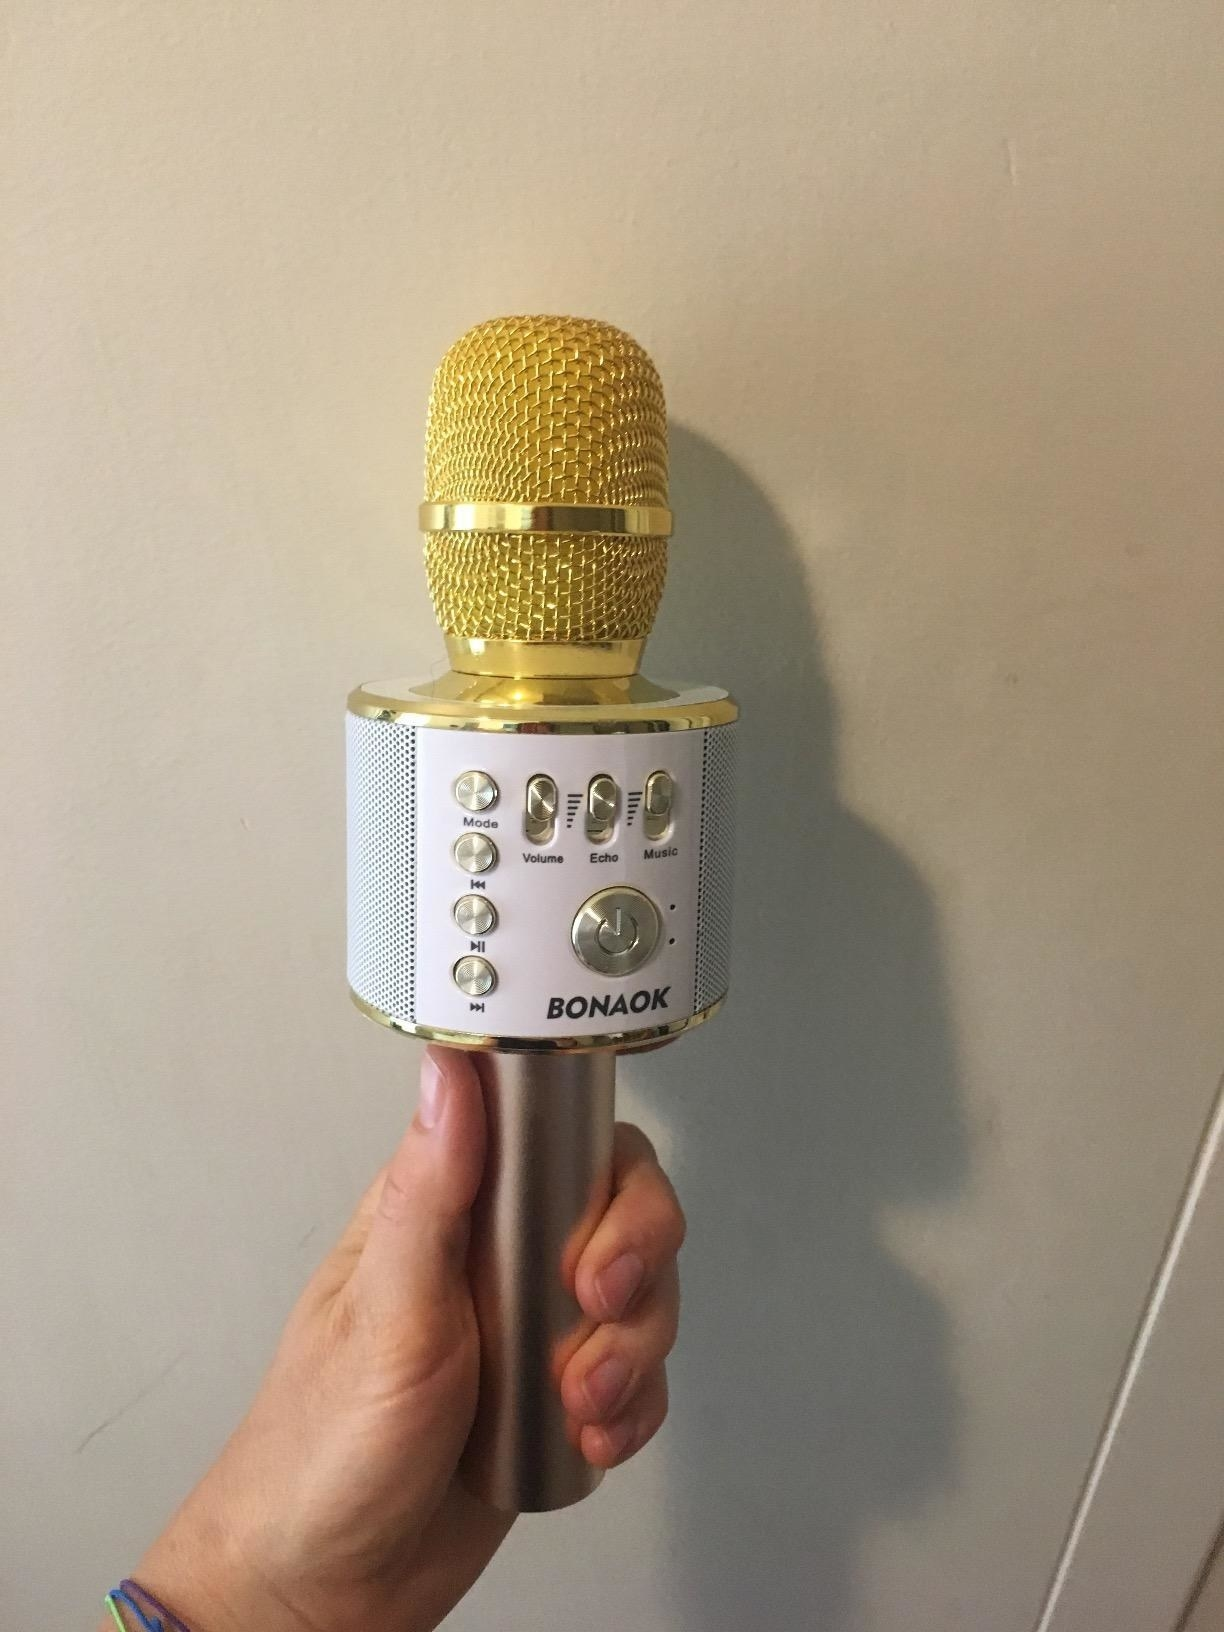 the karaoke microphone in white and yellow